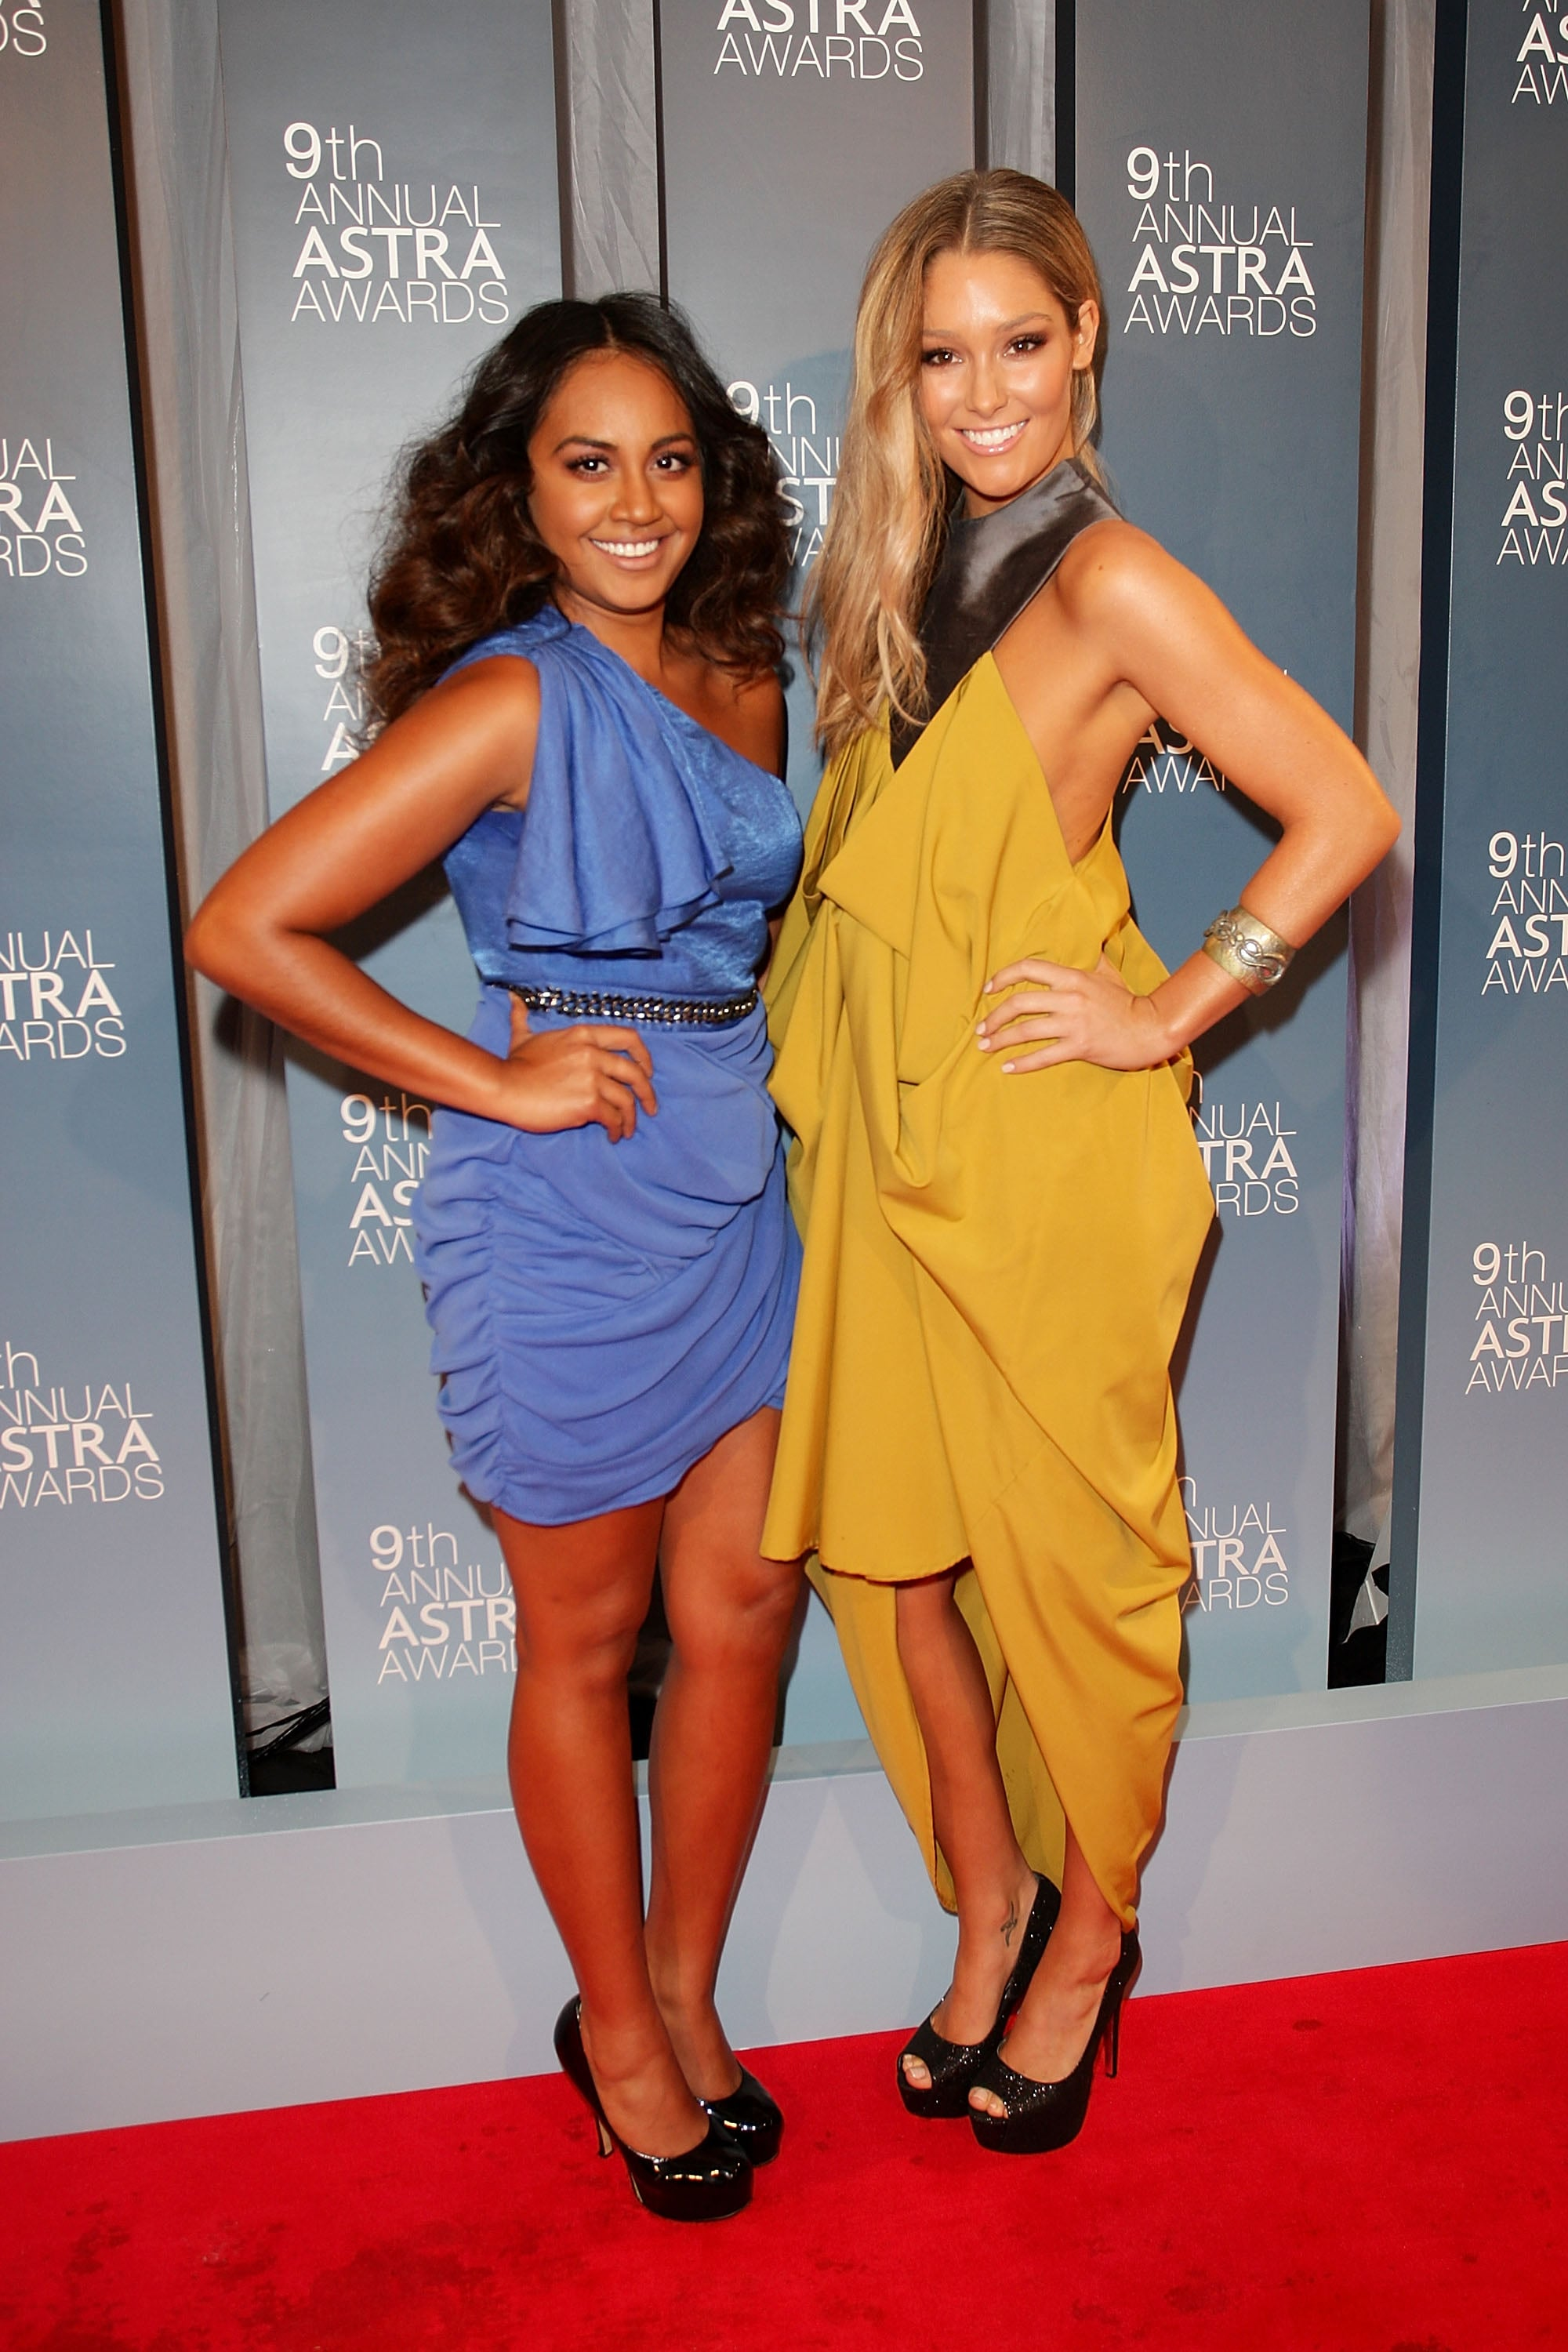 Jessica Mauboy and Erin McNaught